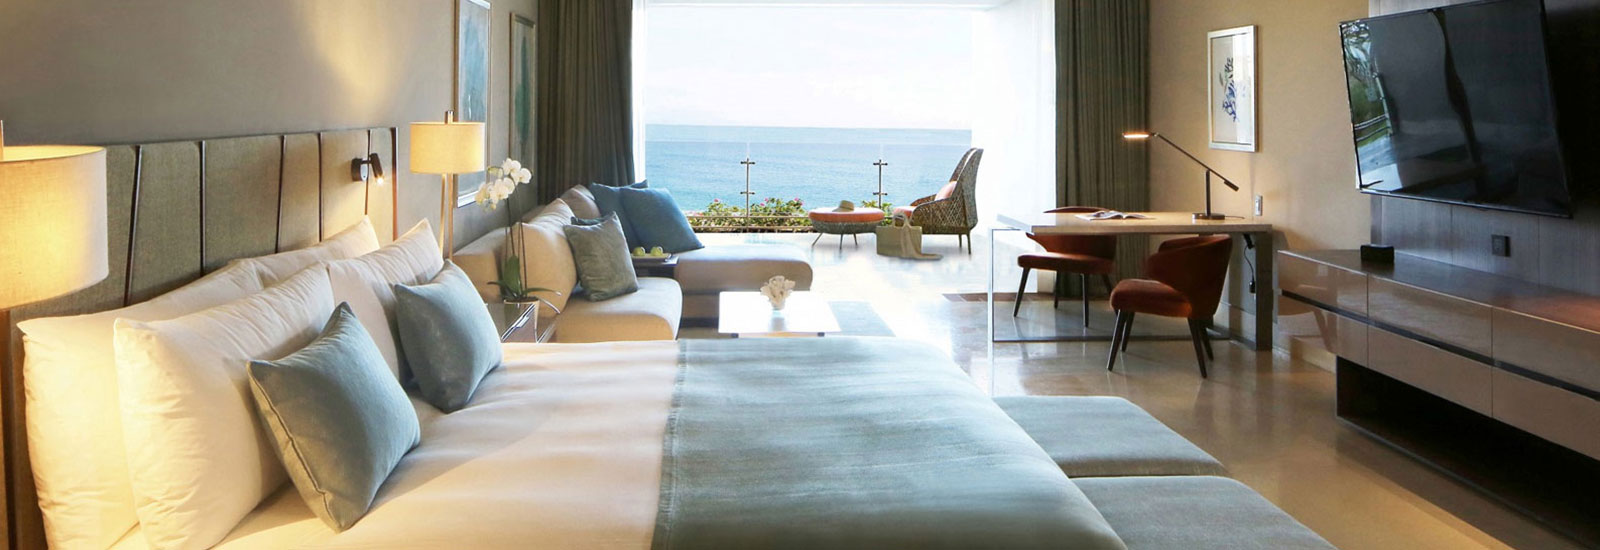 Ambassador Pool Suite of Grand Velas Los Cabos